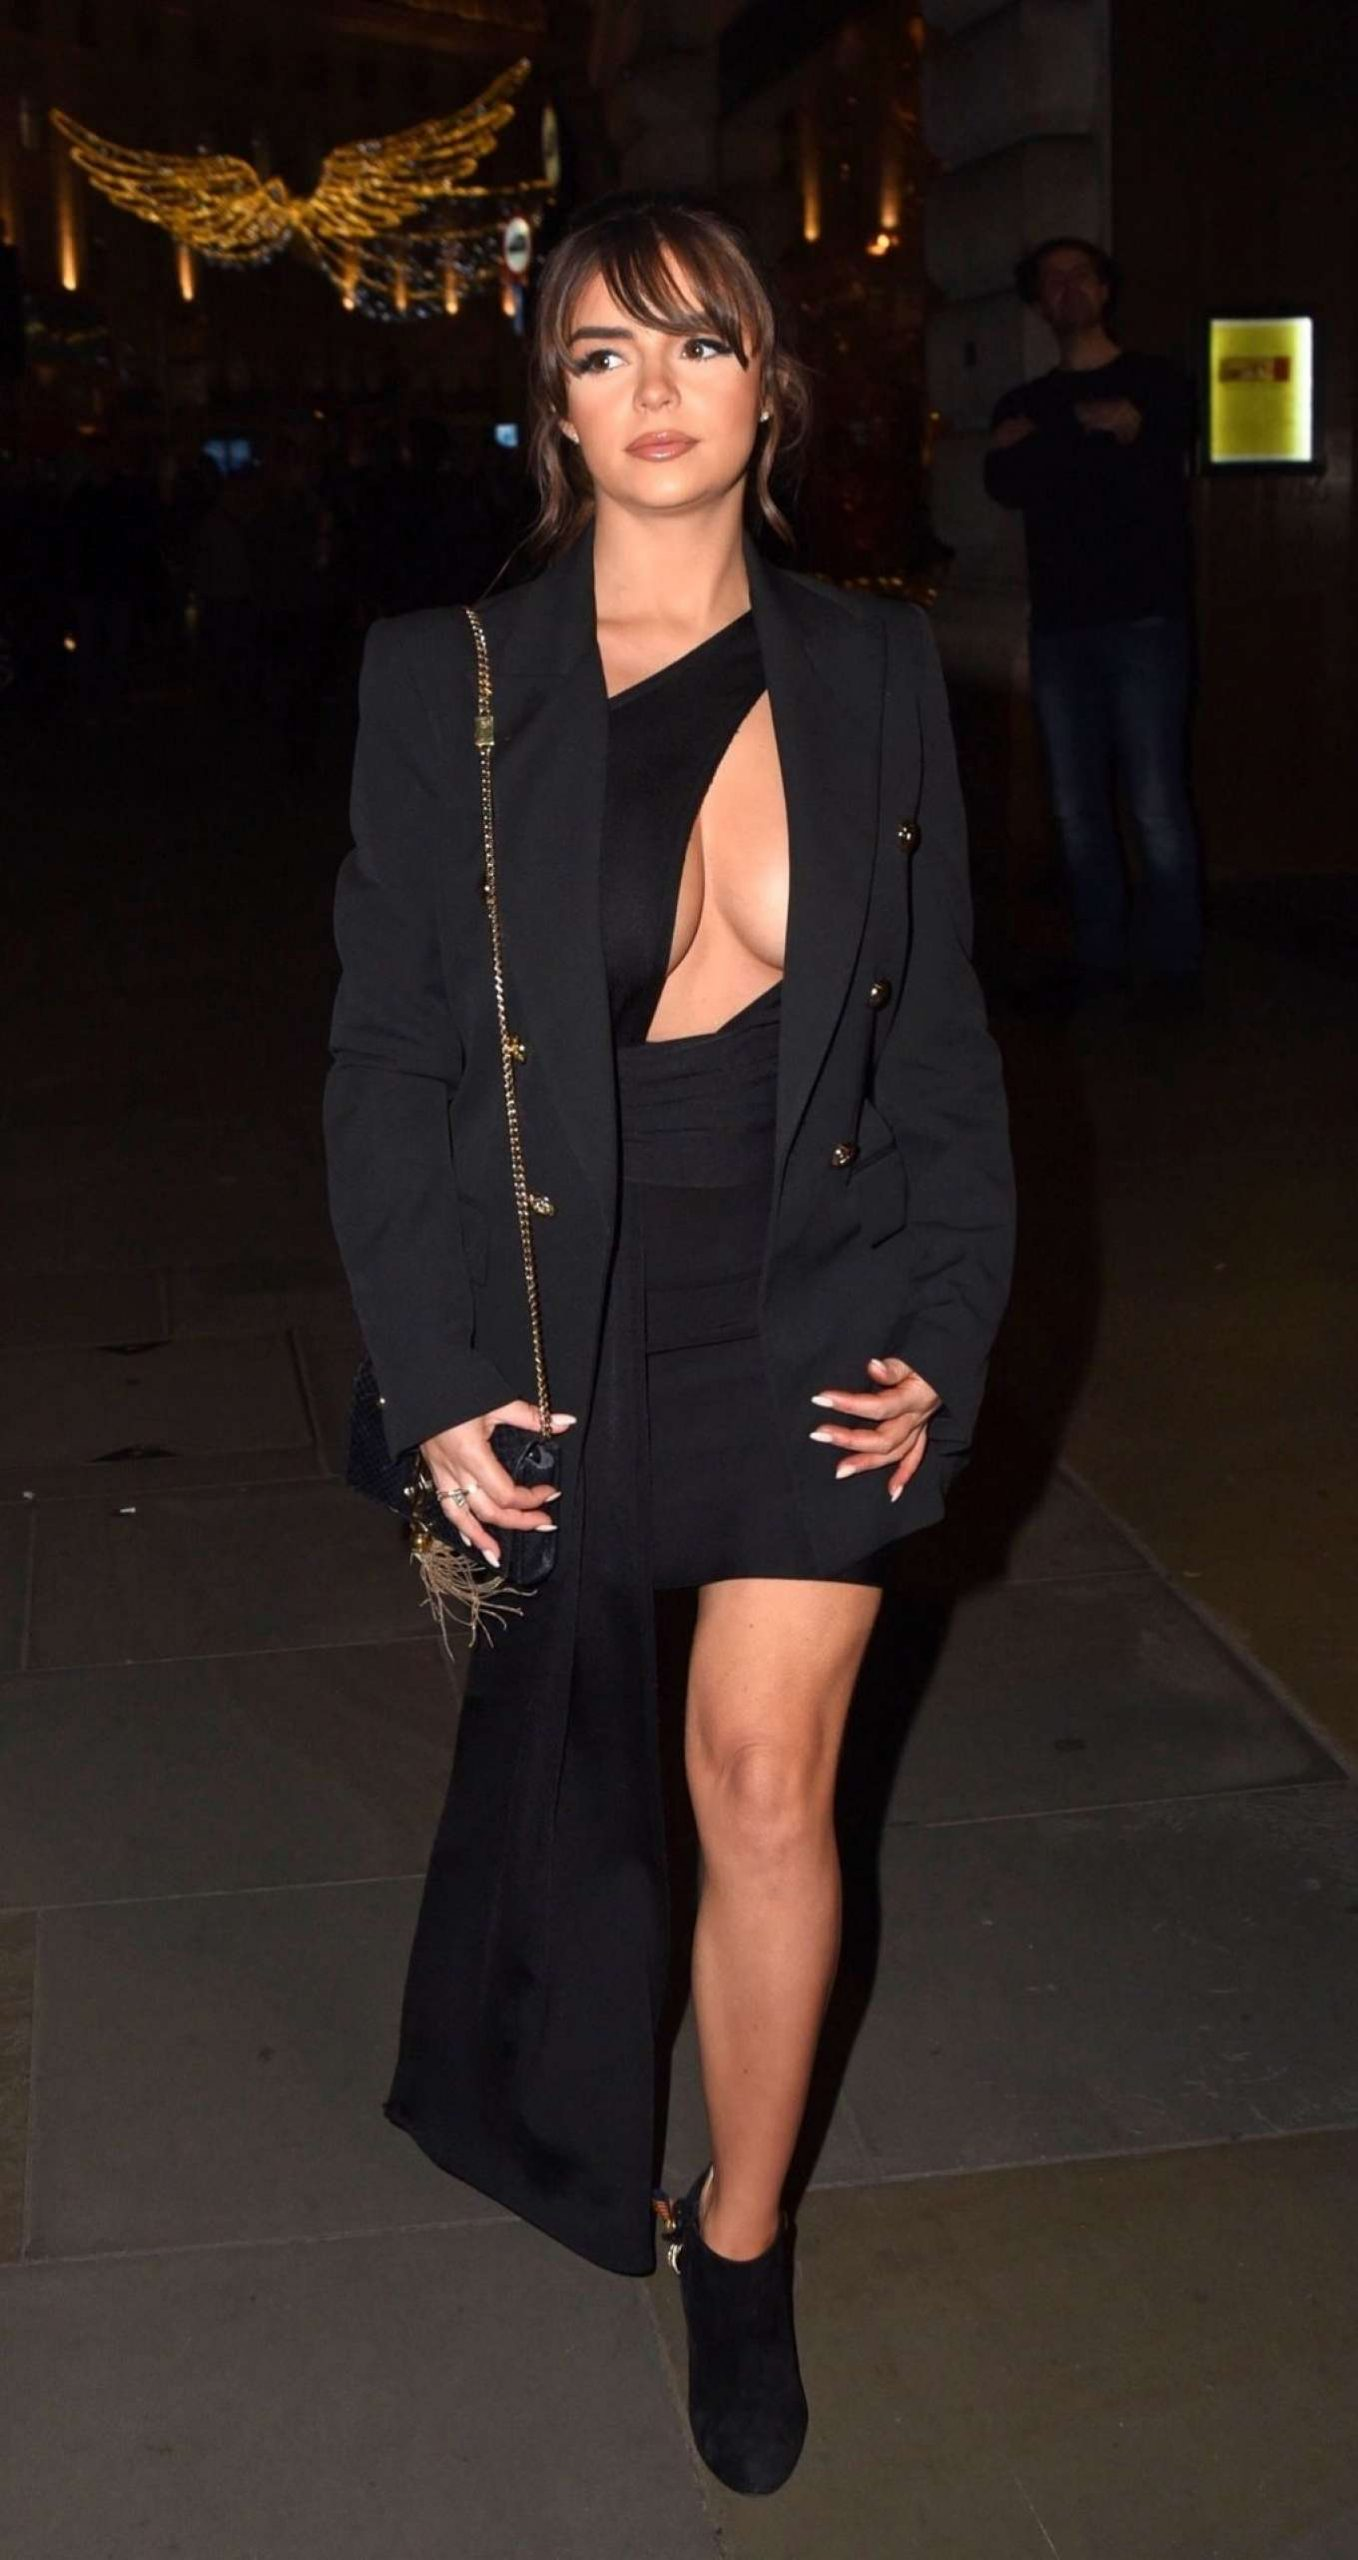 Demi Rose Mawby 2019 : Demi Rose Mawby was pictured while arriving at Cafe Royal in London-13